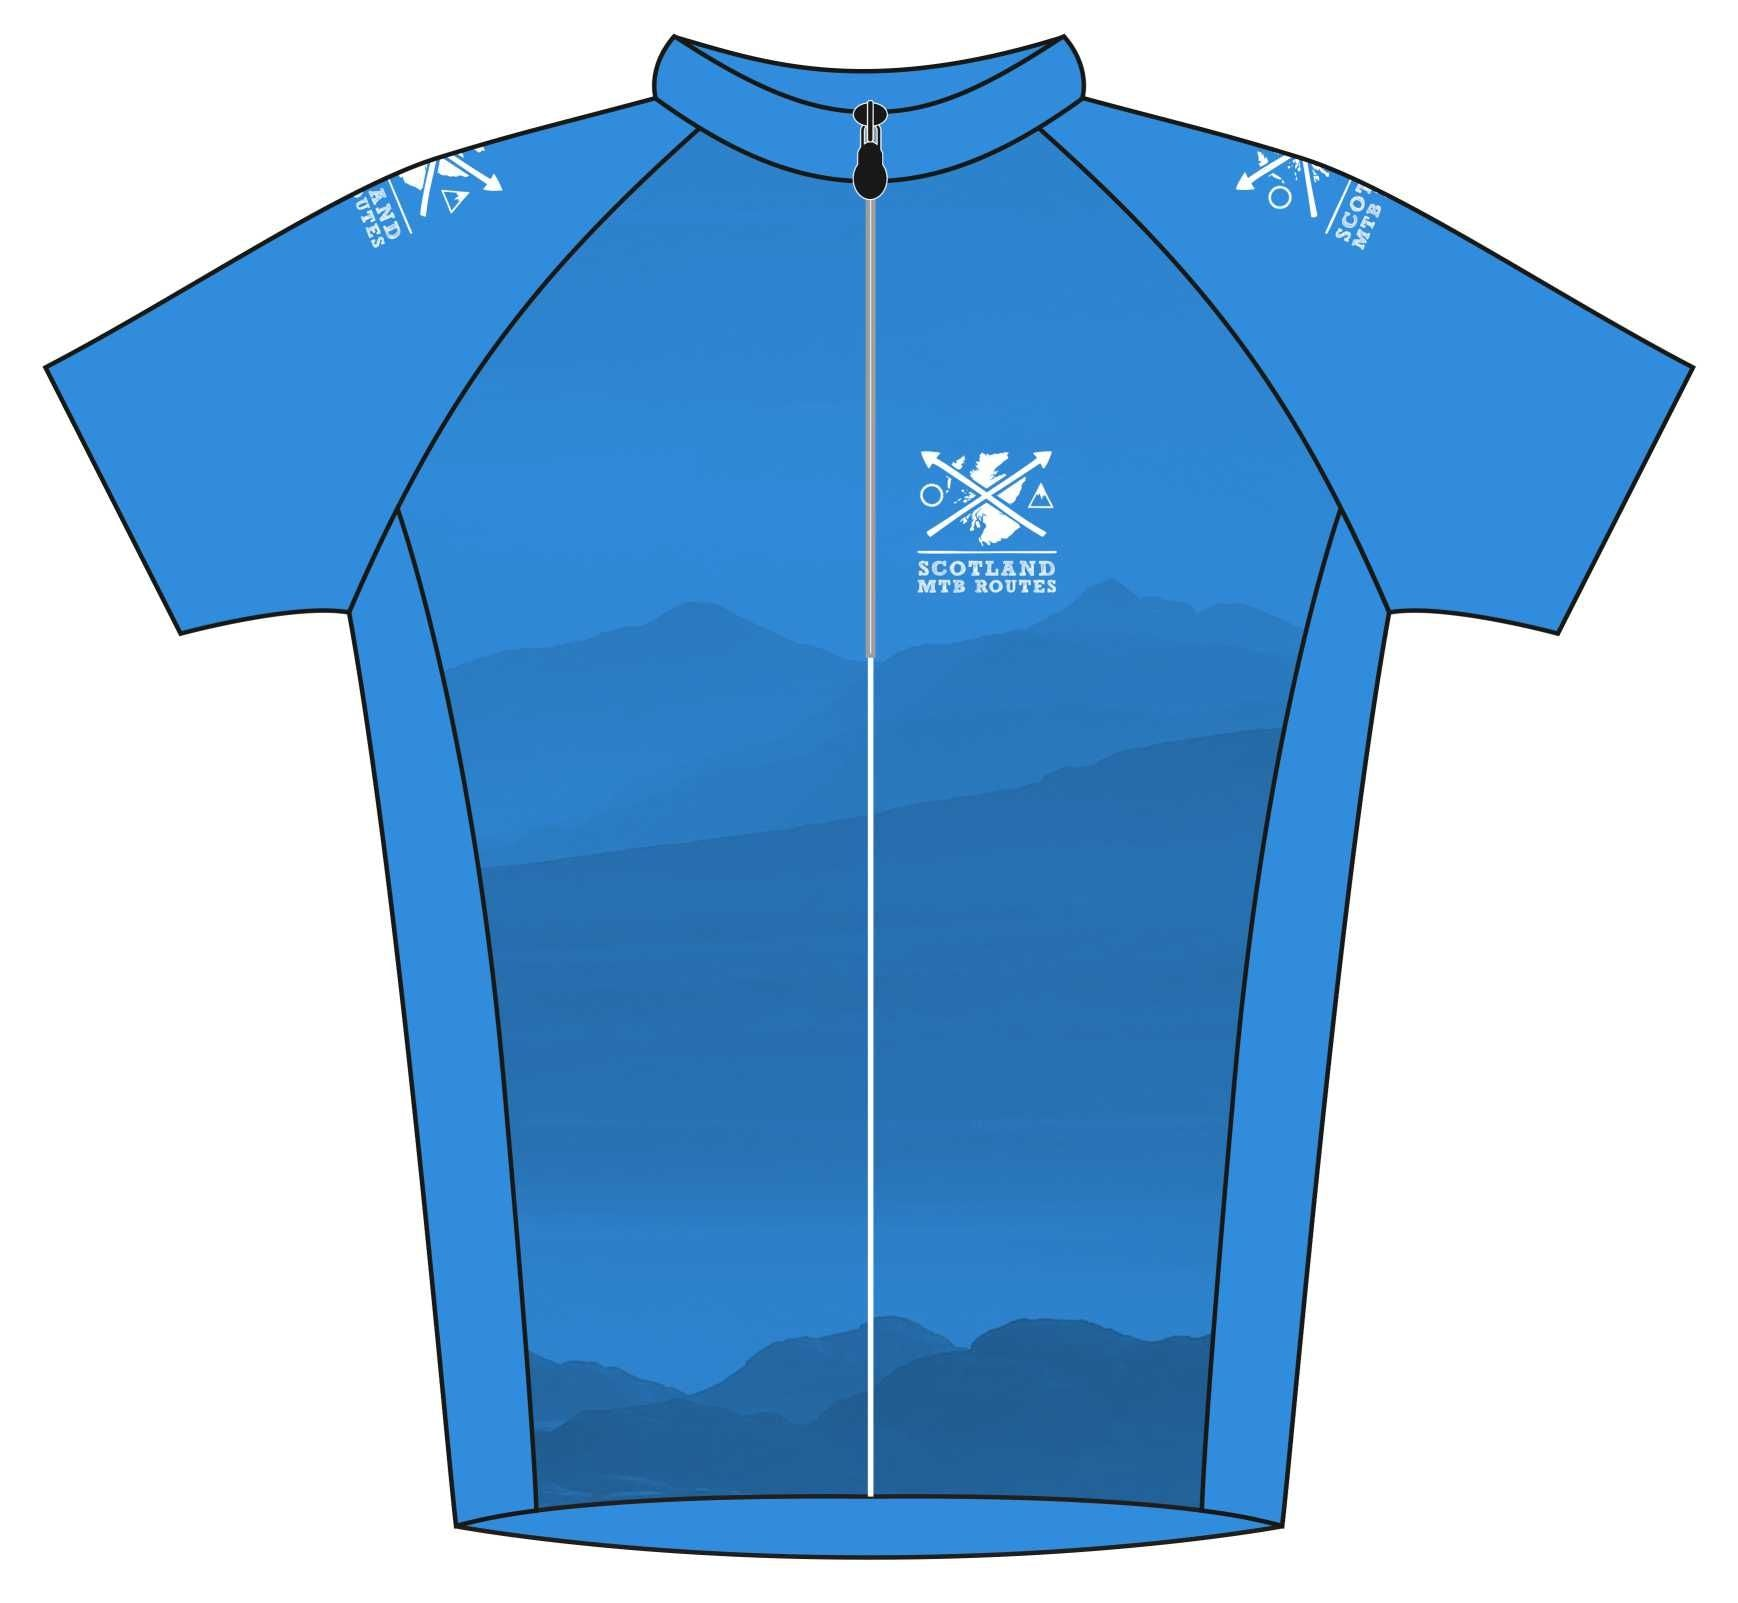 Scotland MTB Routes Road Cycle Jersey Front